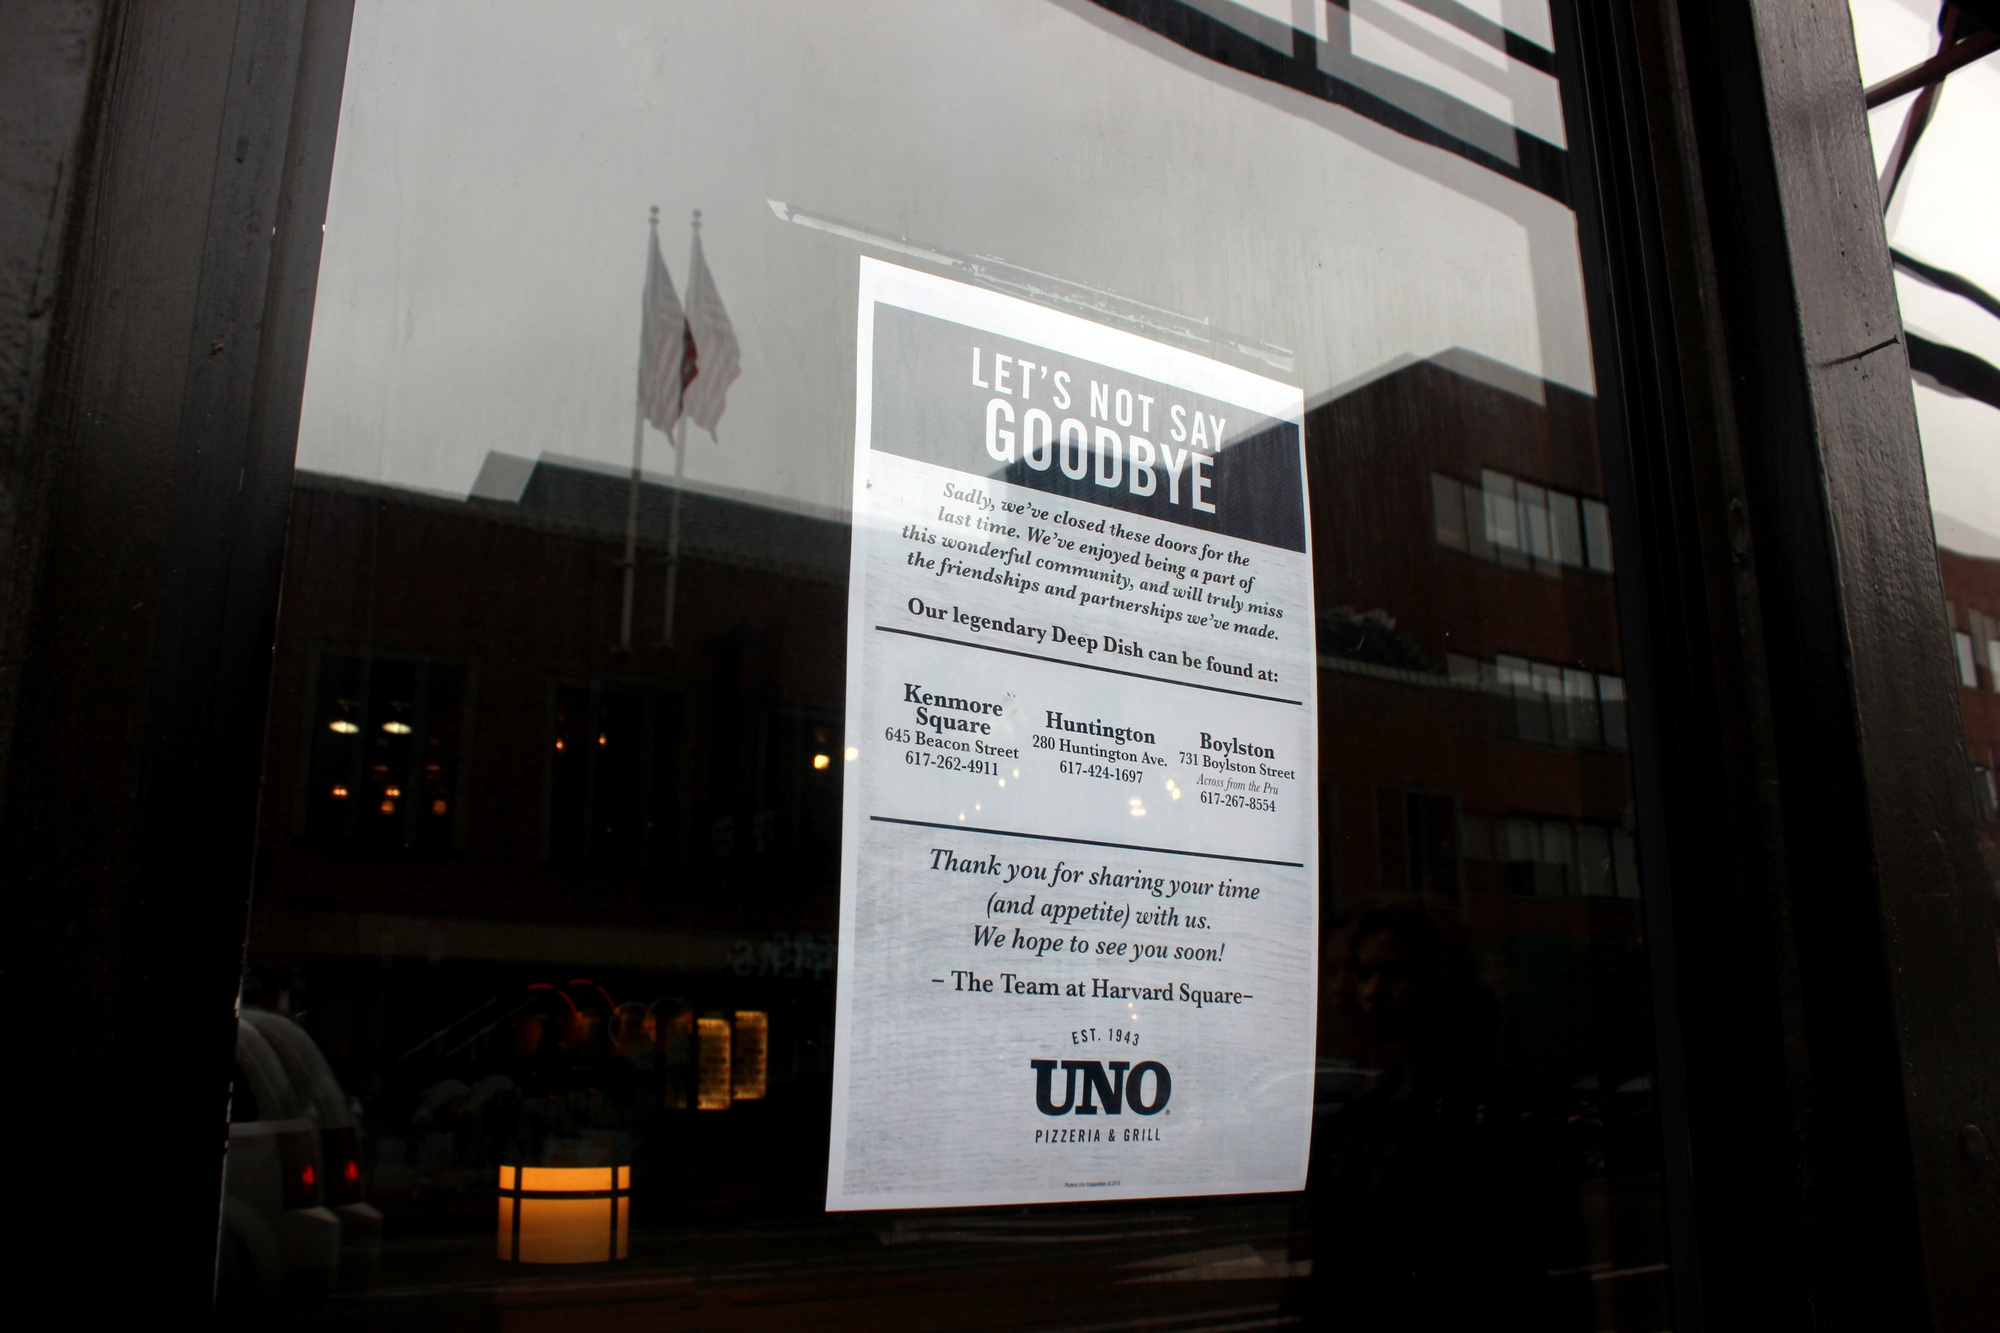 Signs on Unos' former building announce its closure as part of ongoing construction in Harvard Square.